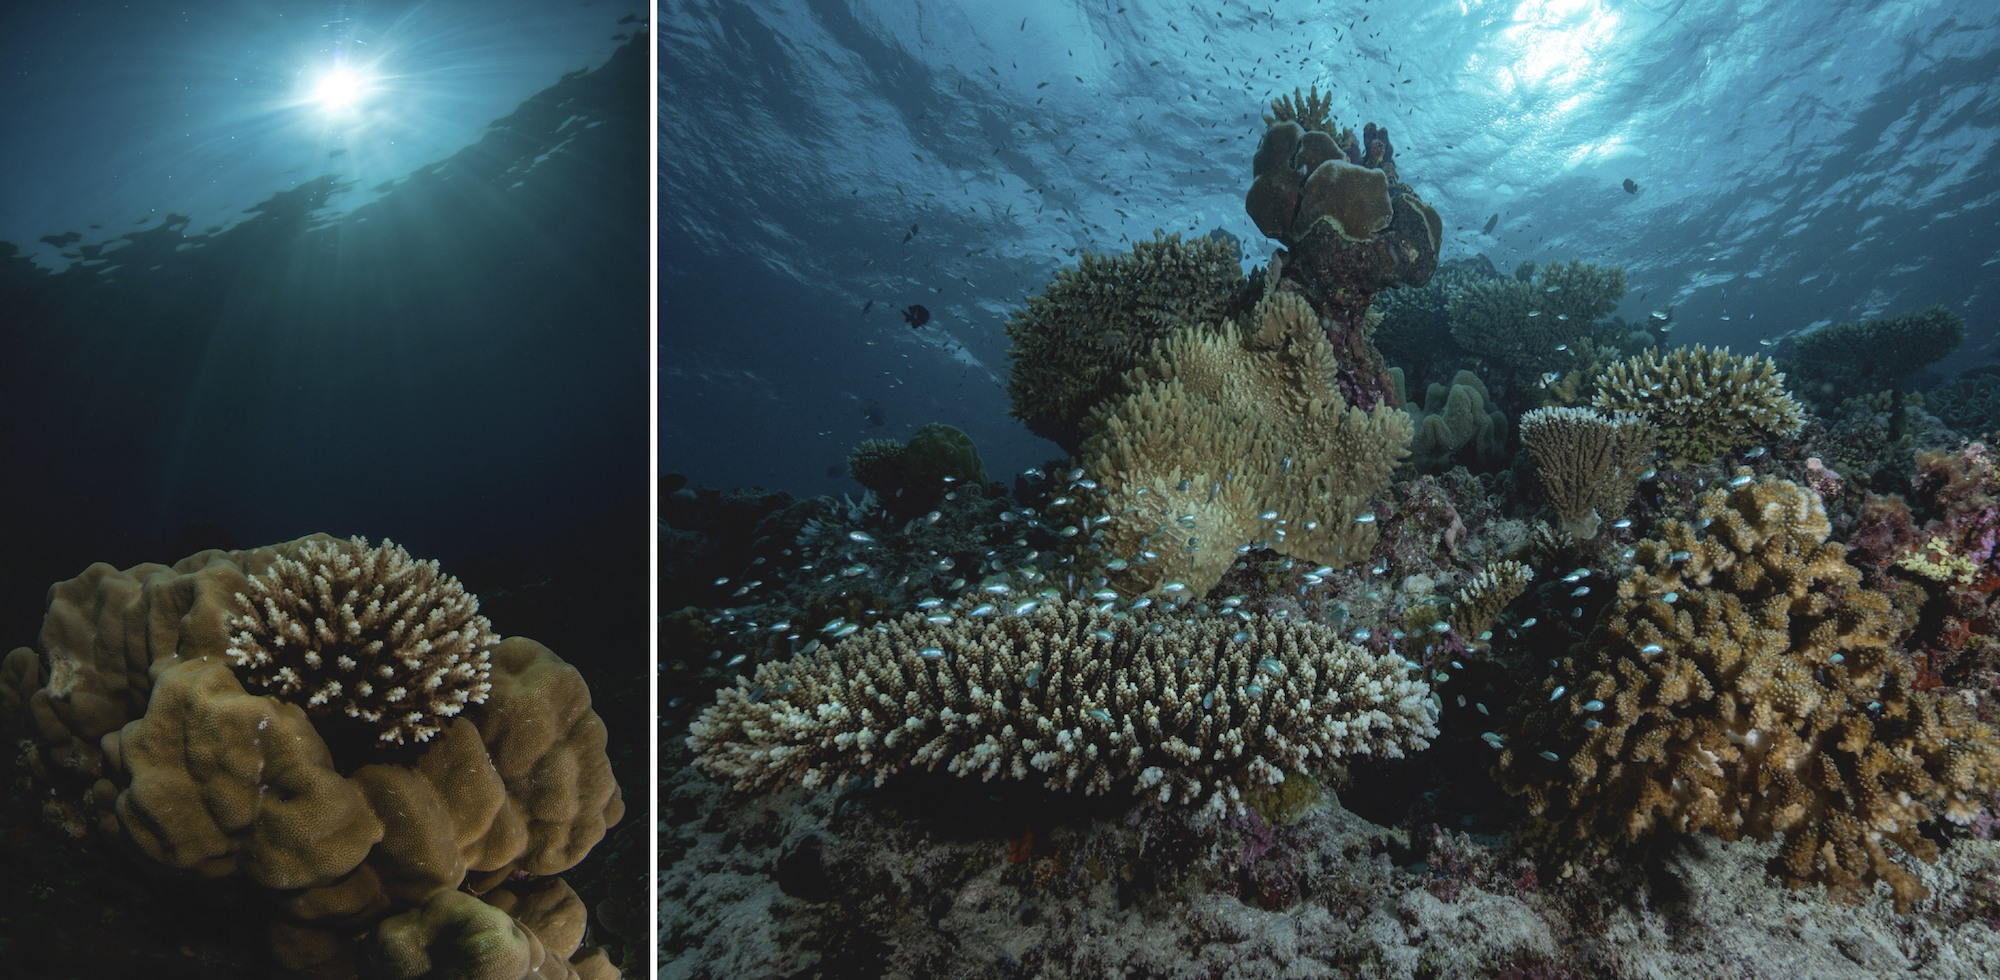 An entire ecosystem is at the edge of collapse and we mustn't let it vanish with just another headline (top). Coral reefs require moderately clear and optimally warm waters to thrive (bottom left). Coral reefs are so full of diverse marine life that one imagines they could never run out. In the 21st century, however, more and more of the ocean's life forms are being led to extinction (bottom right).